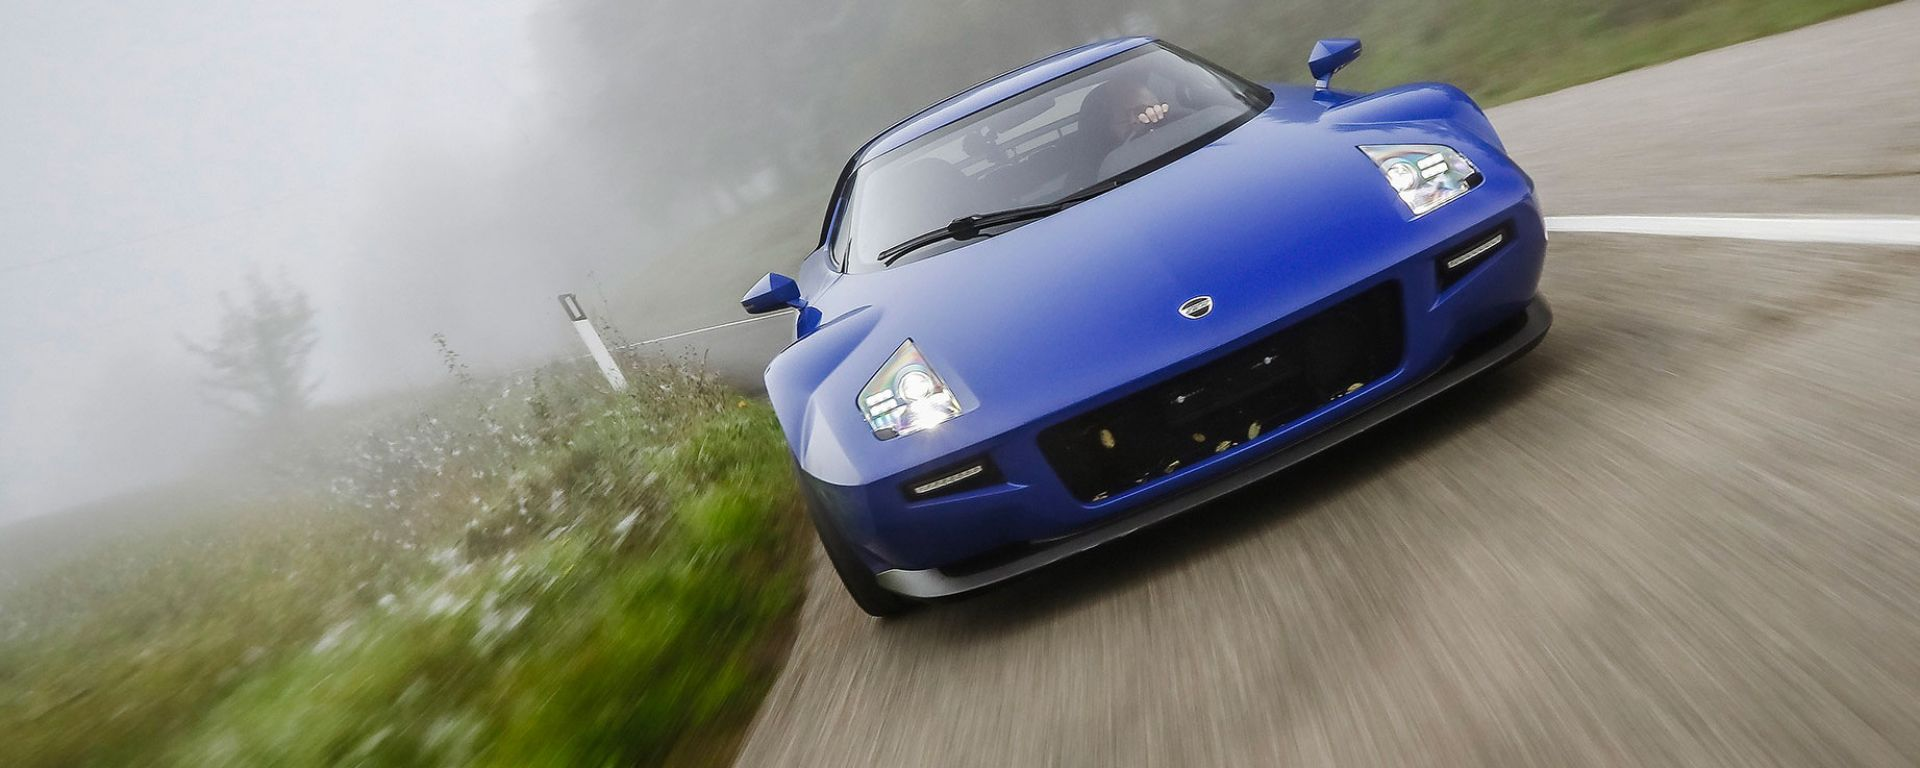 New Stratos: la base è una Ferrari 430